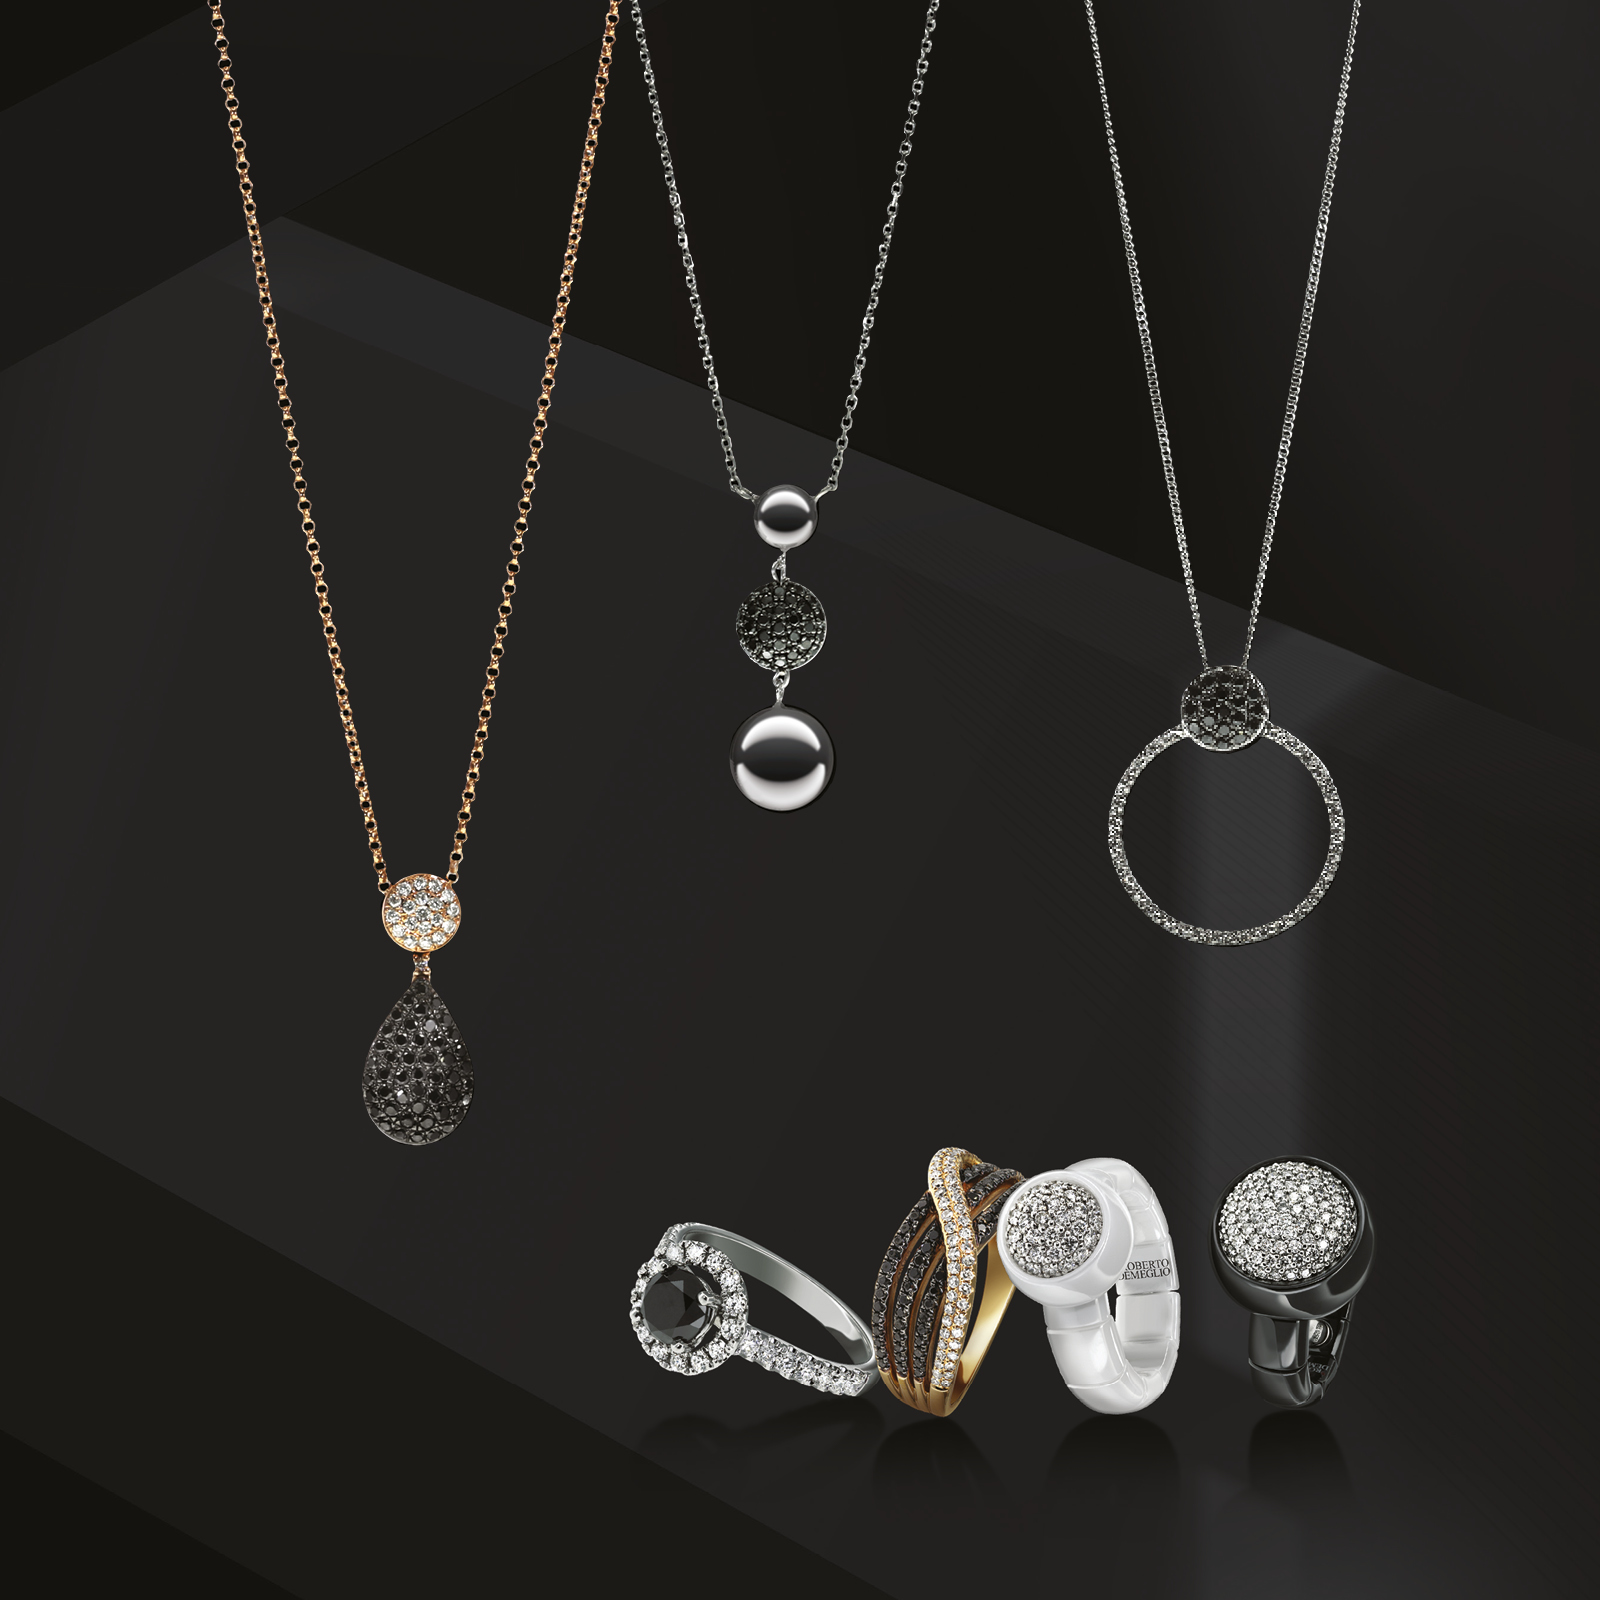 Luxury jewellery and watch photography for Finnies the Jeweller, Aberdeen